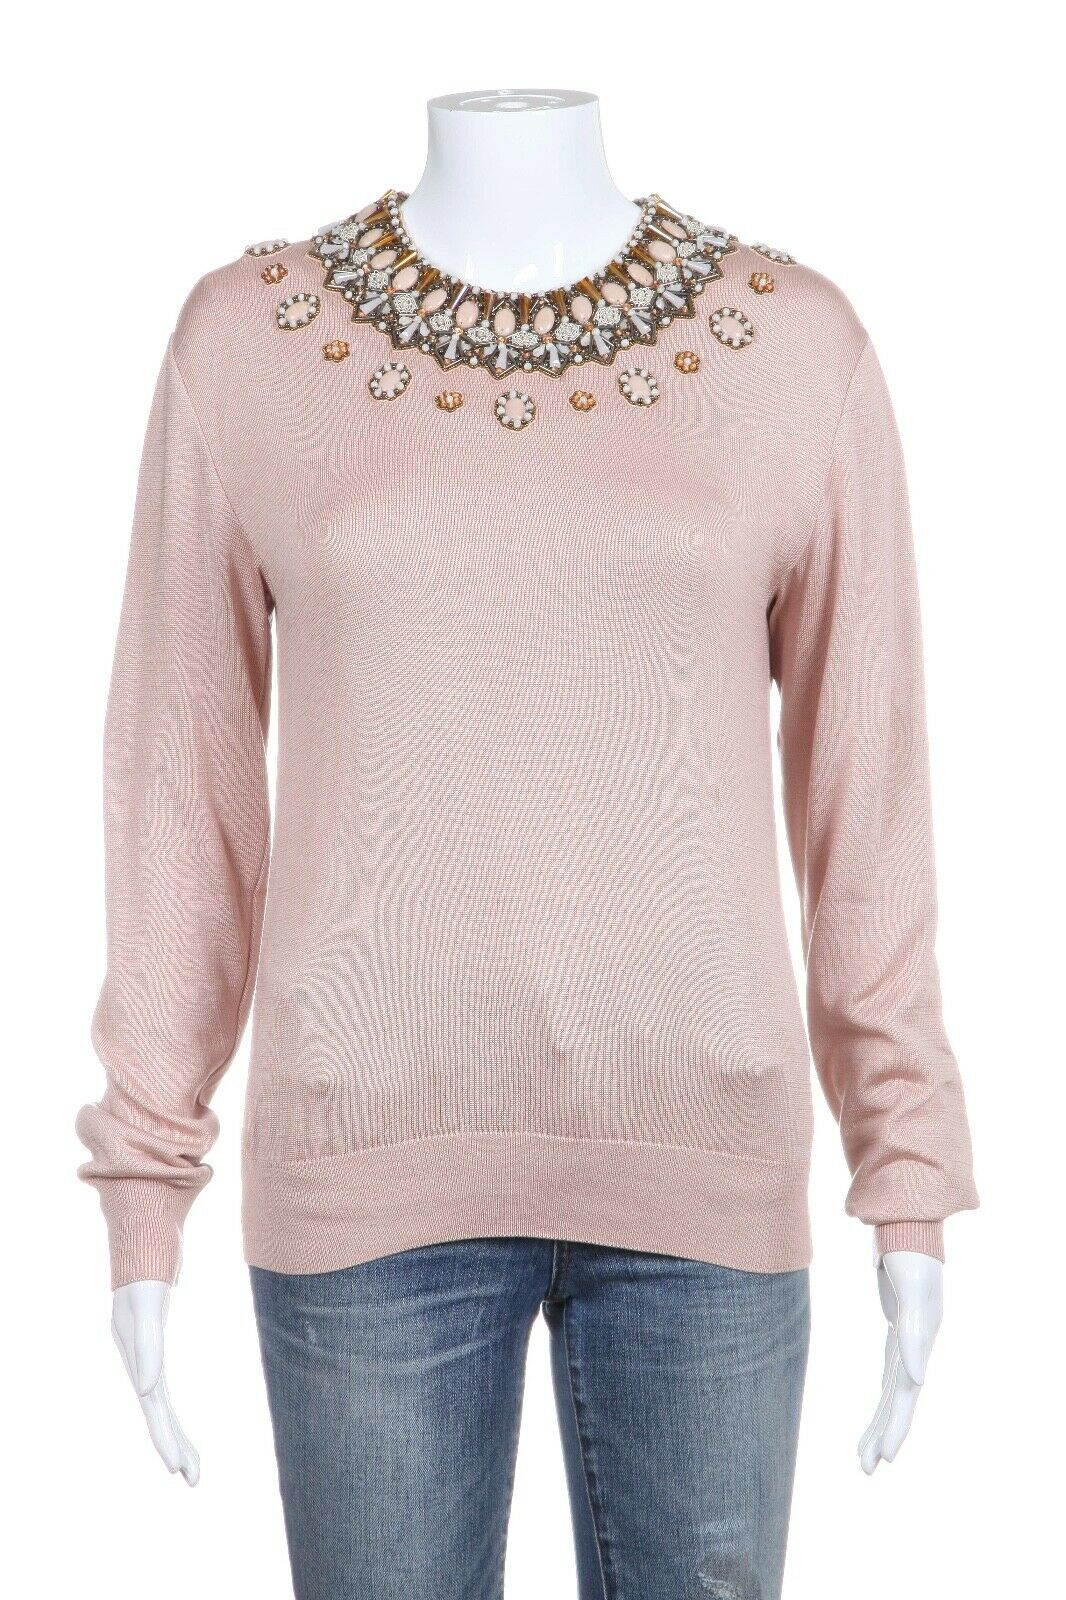 ANDREW GN Knit Embellished Sweater Size 36 (S) (New)